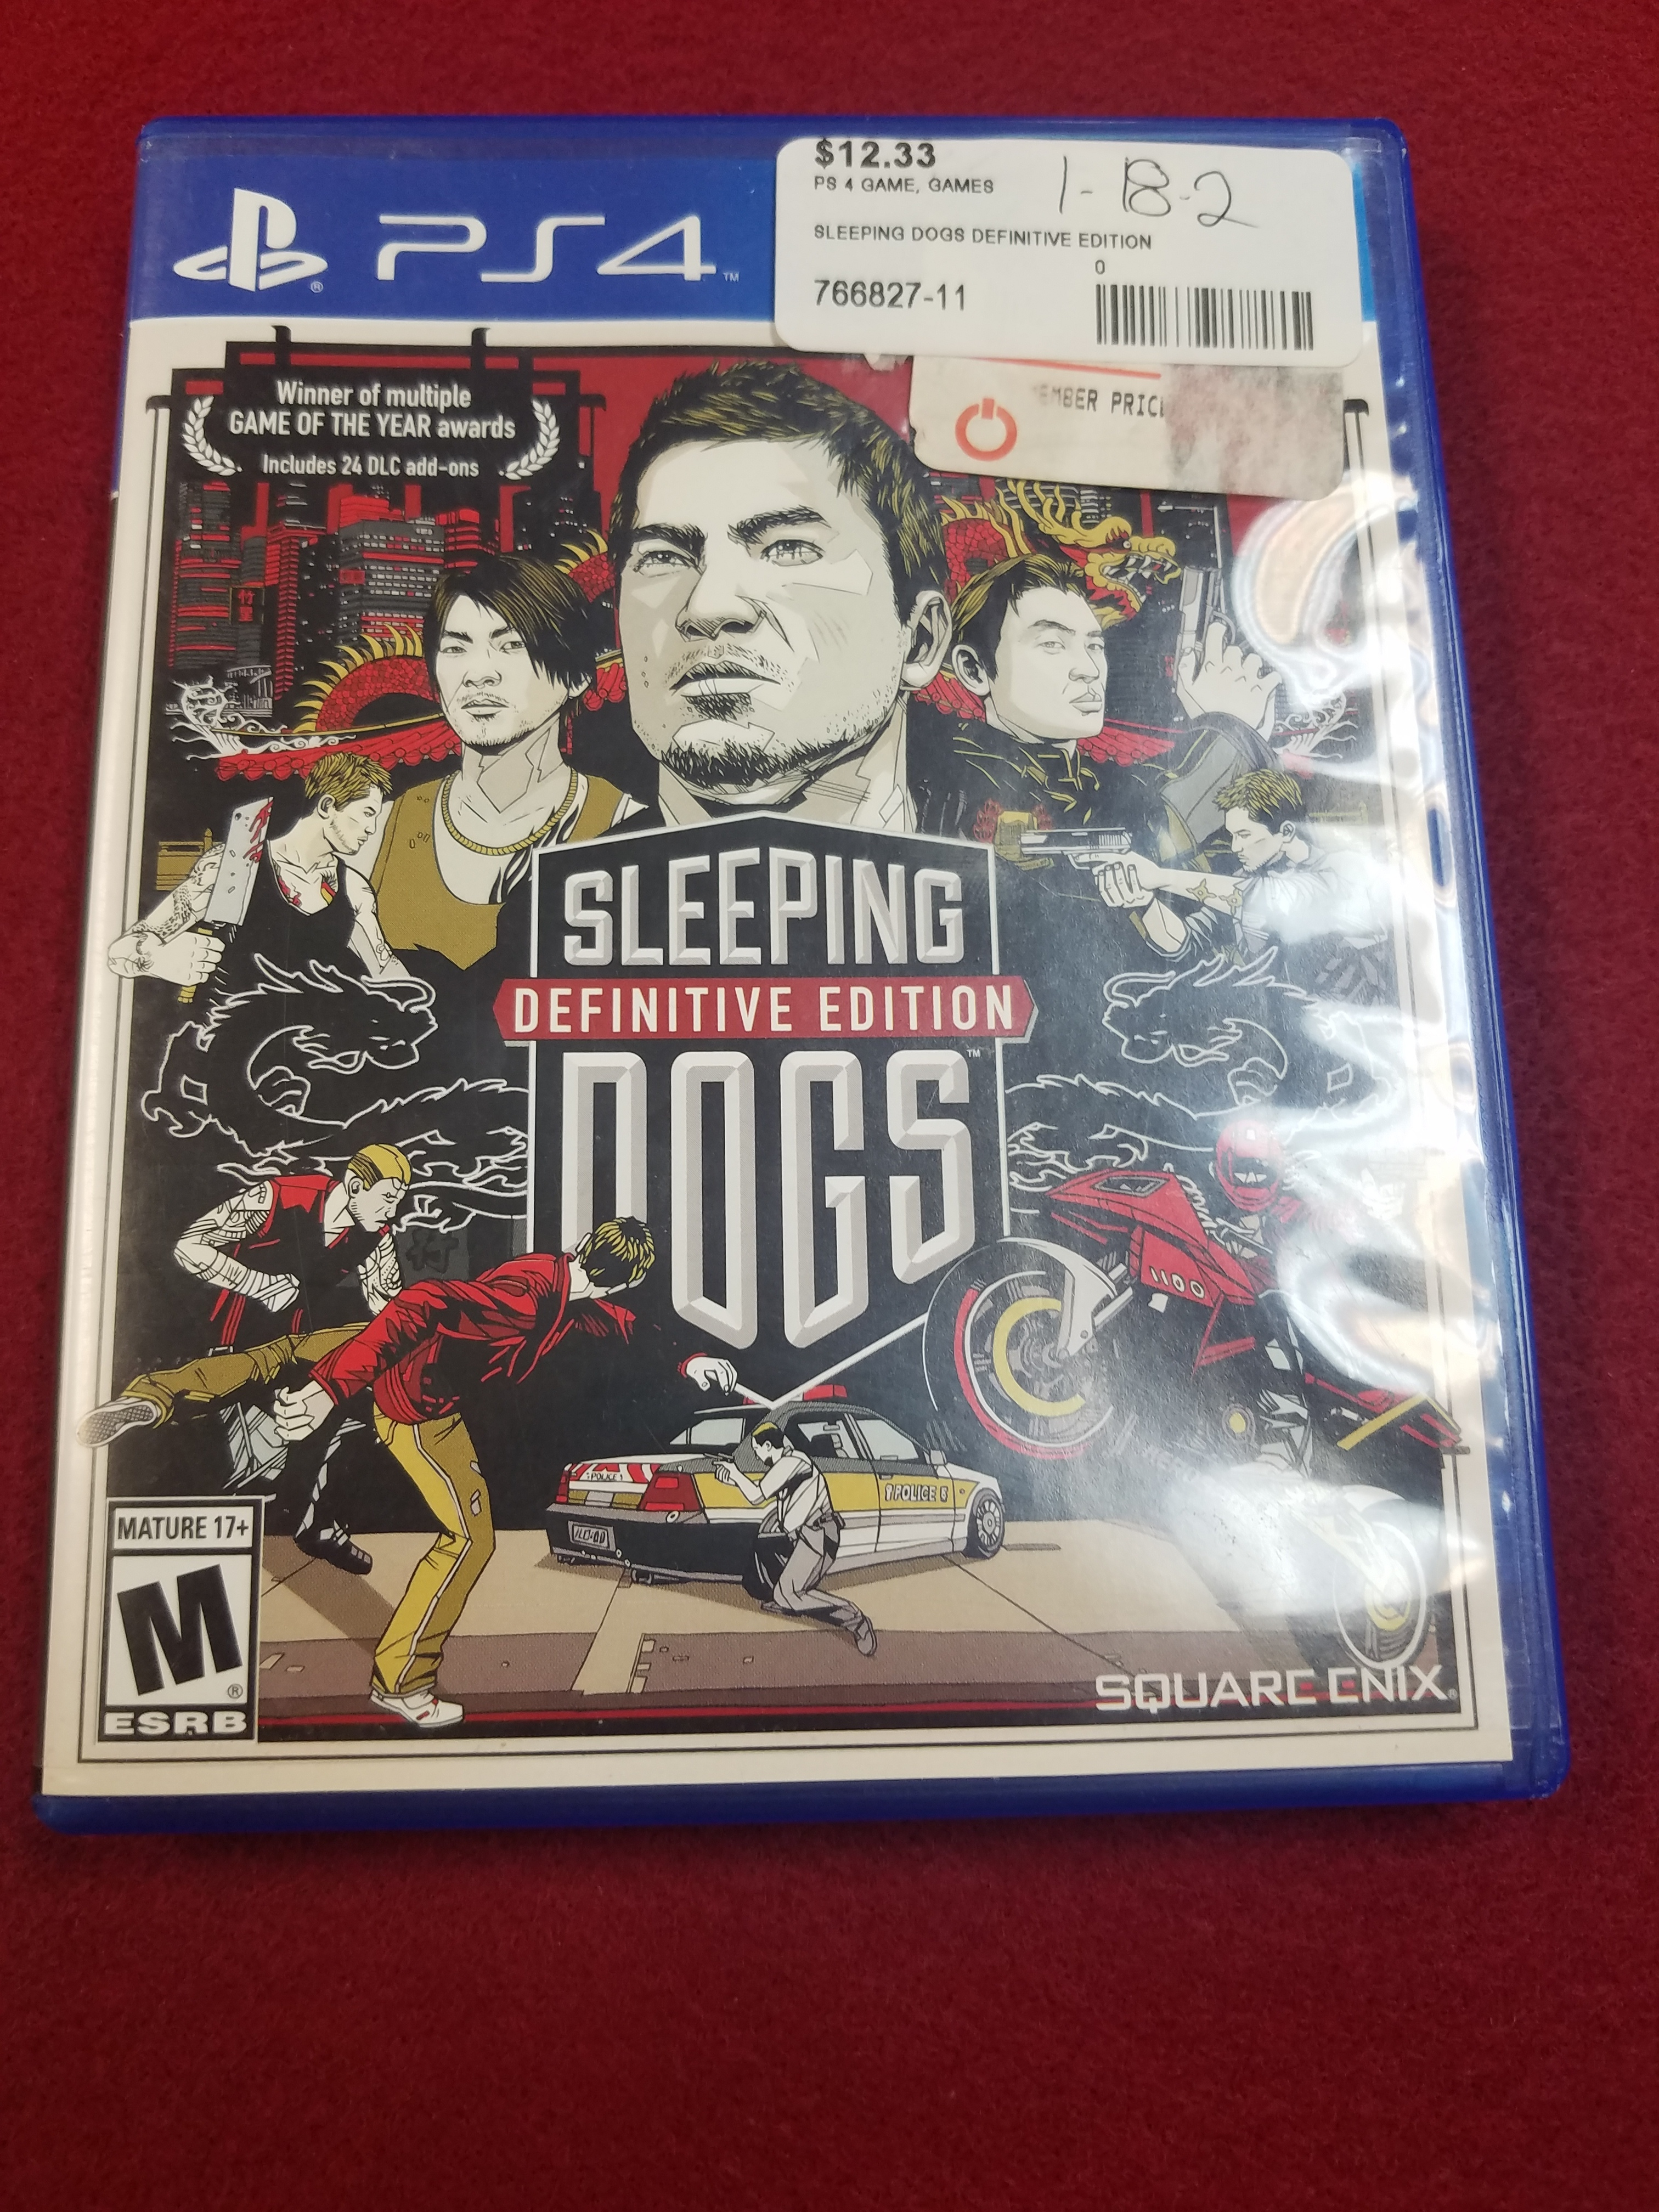 PS4 GAME - SLEEPING DOGS DEFINITIVE EDITION